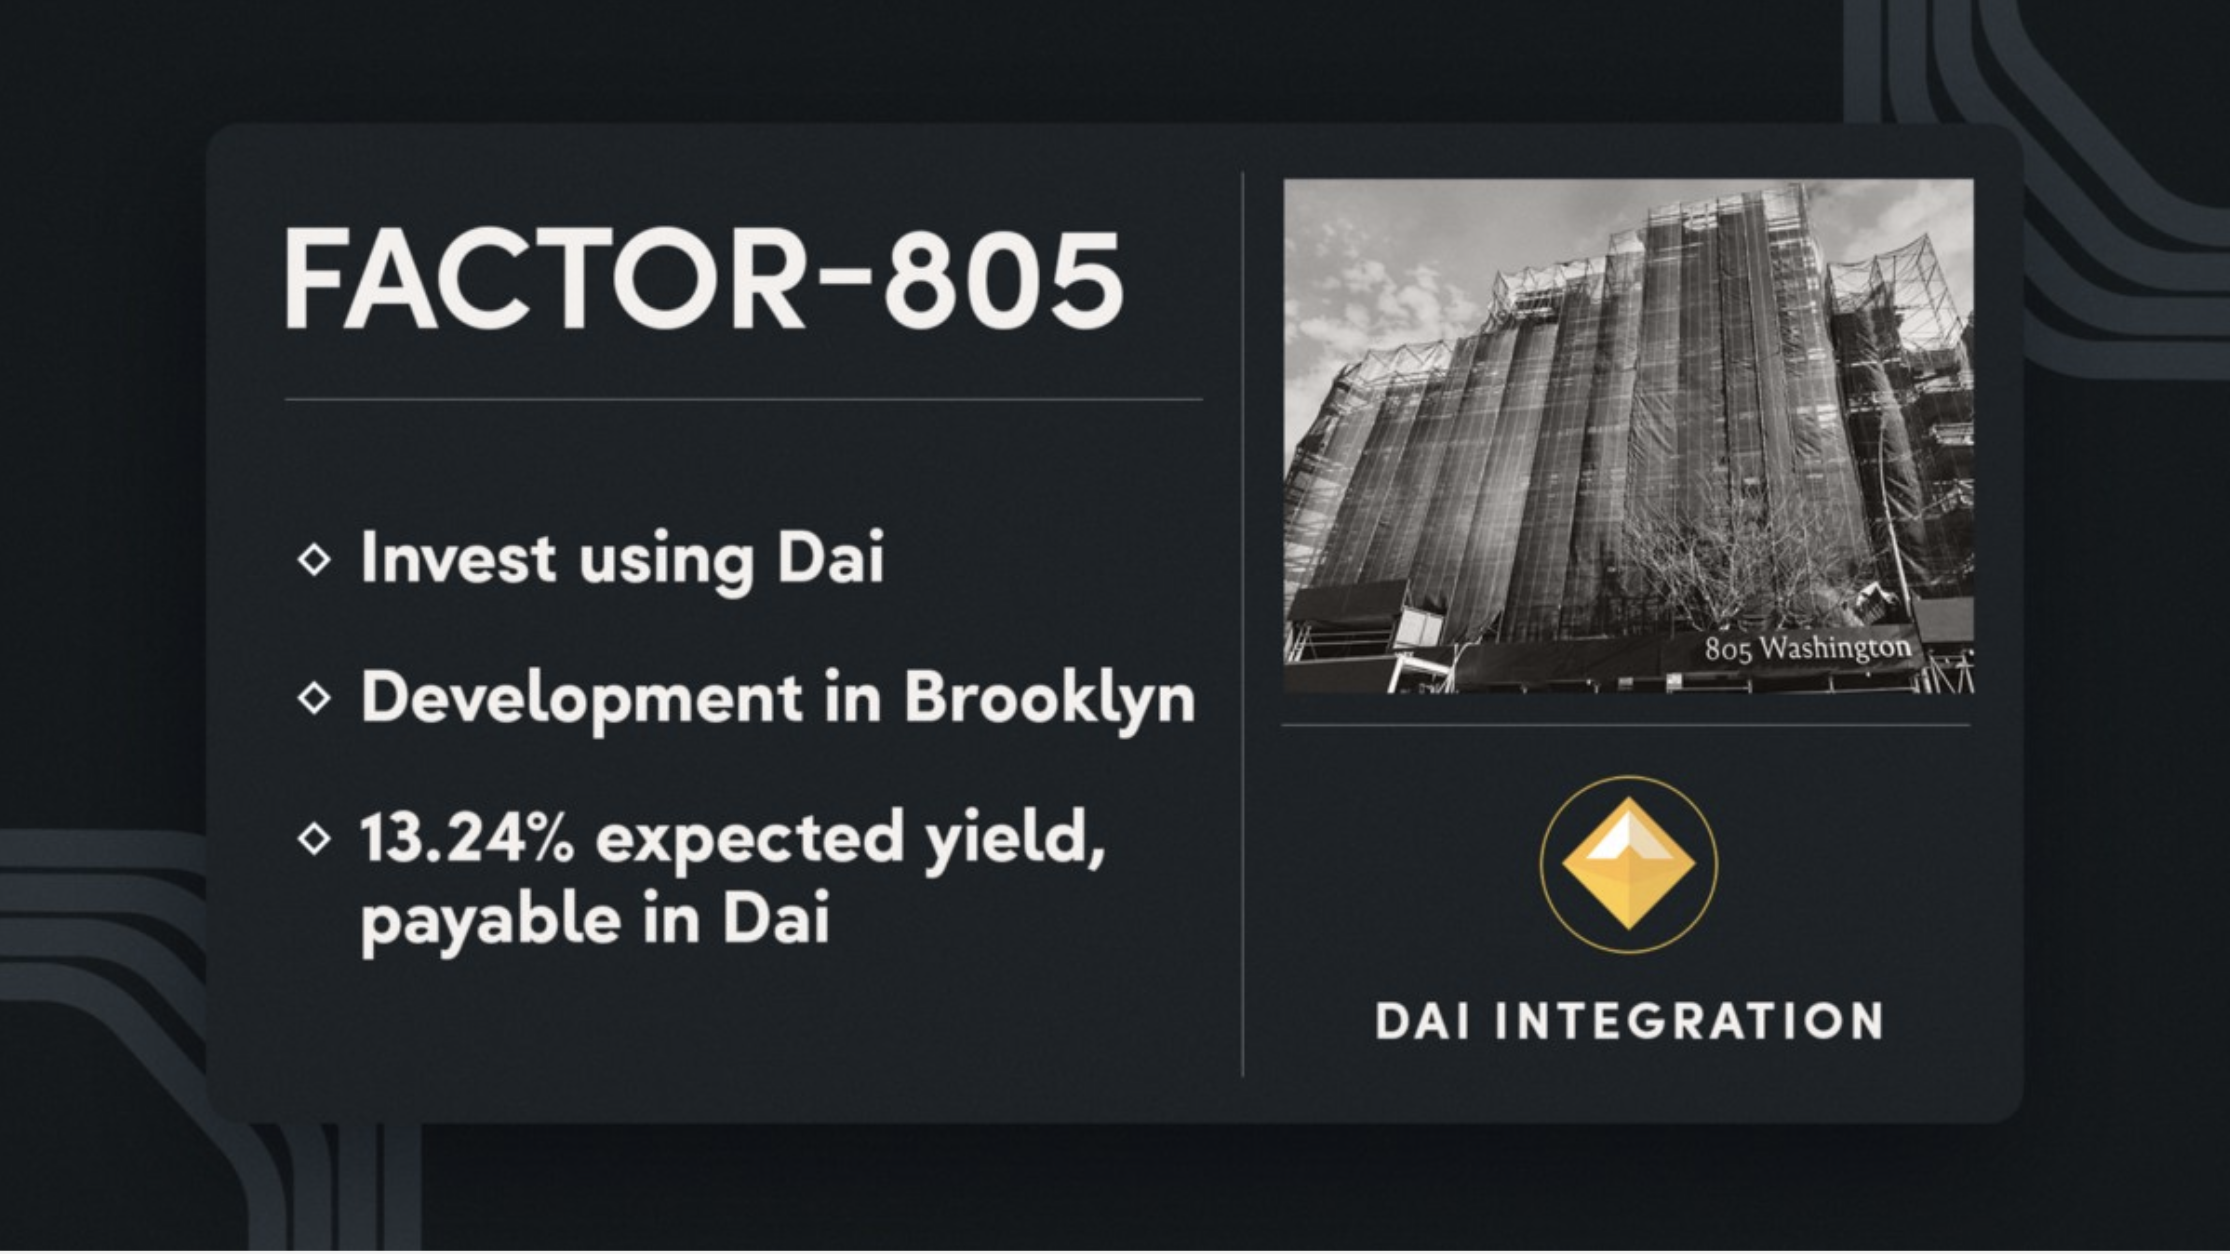 FACTOR 805 Is The First Real World Asset That Can Be Tokenized And Have Distributions Paid In Dai Or Fiat